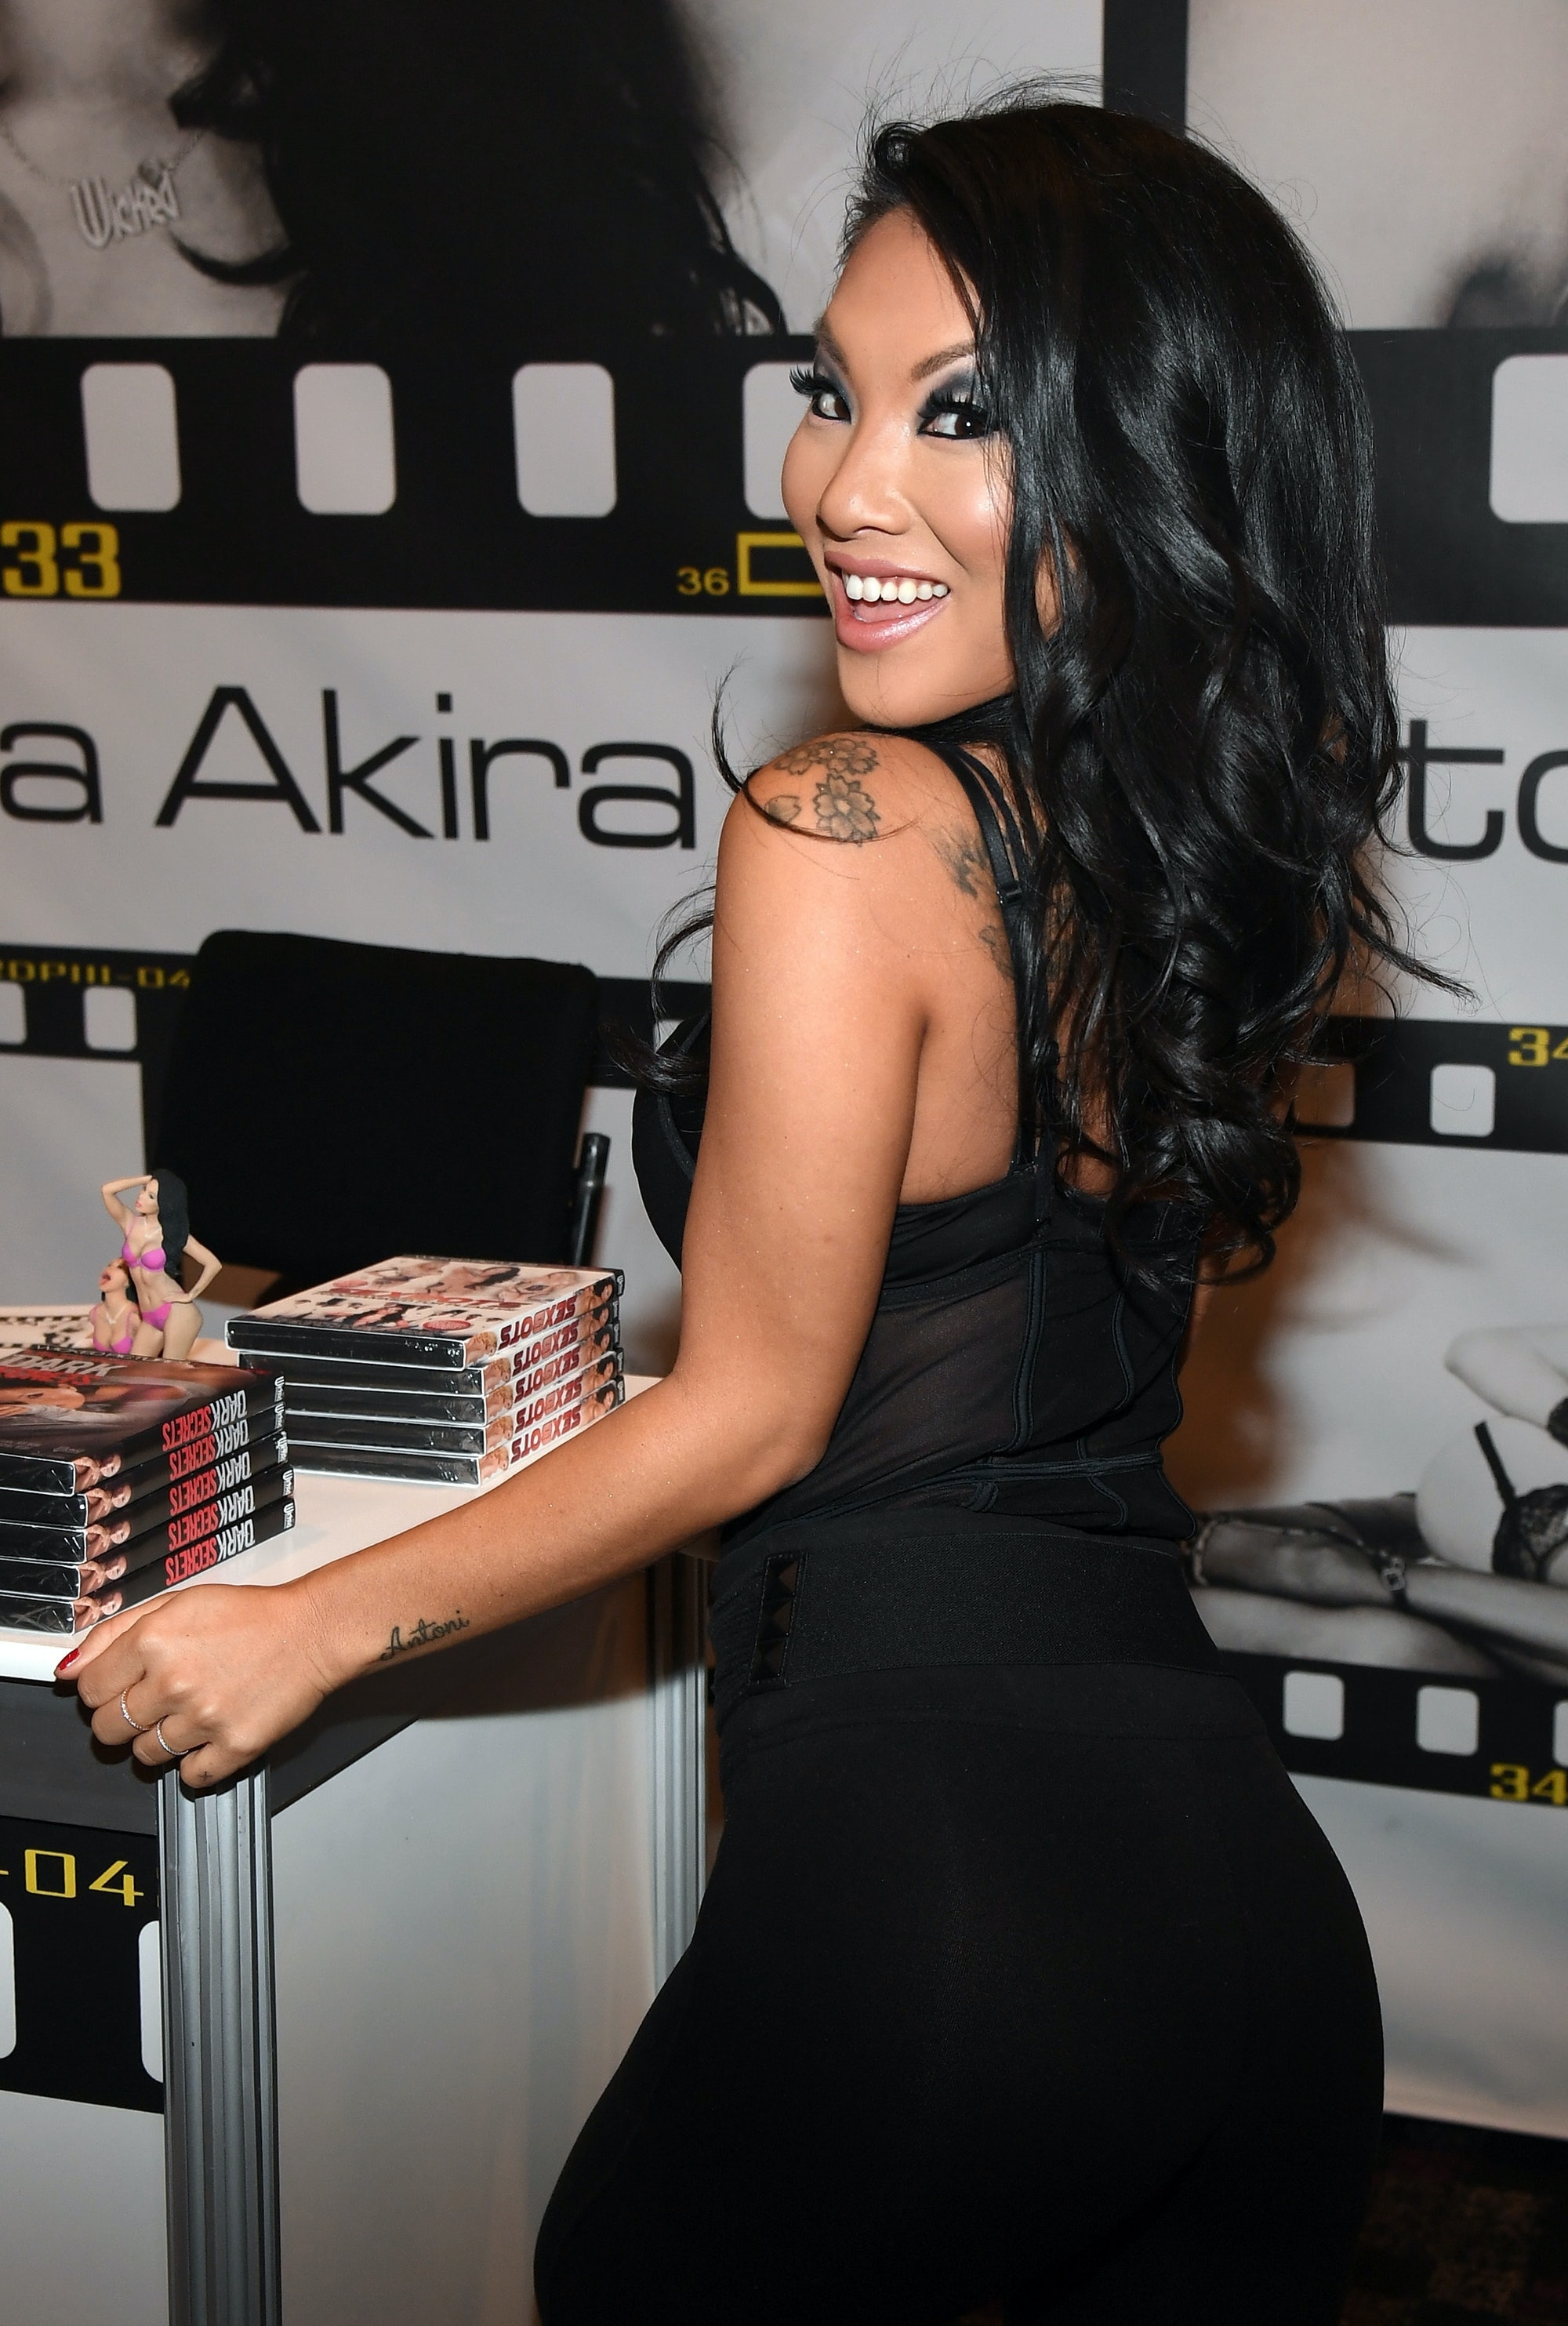 LAS VEGAS, NV - JANUARY 18: Adult film actress/director Asa Akira appears at the Wicked Pictures booth at the 2017 AVN Adult Entertainment Expo at the Hard Rock Hotel & Casino on January 18,2017in Las Vegas, Nevada. (Photo by Ethan Miller/Getty Images)